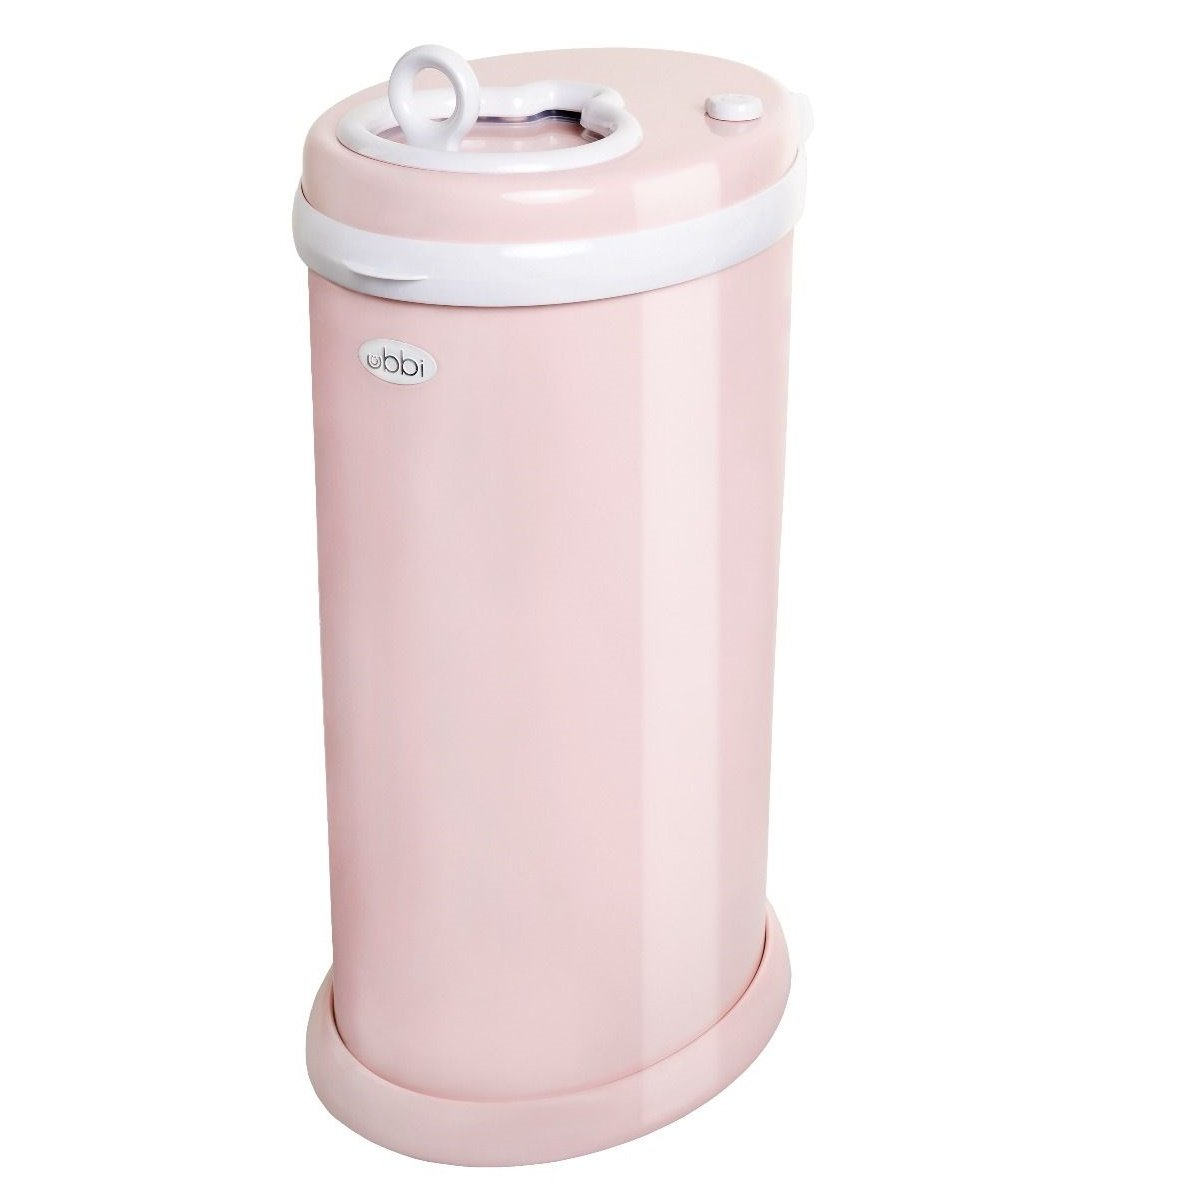 Ubbi Diaper Pail in Blush Pink